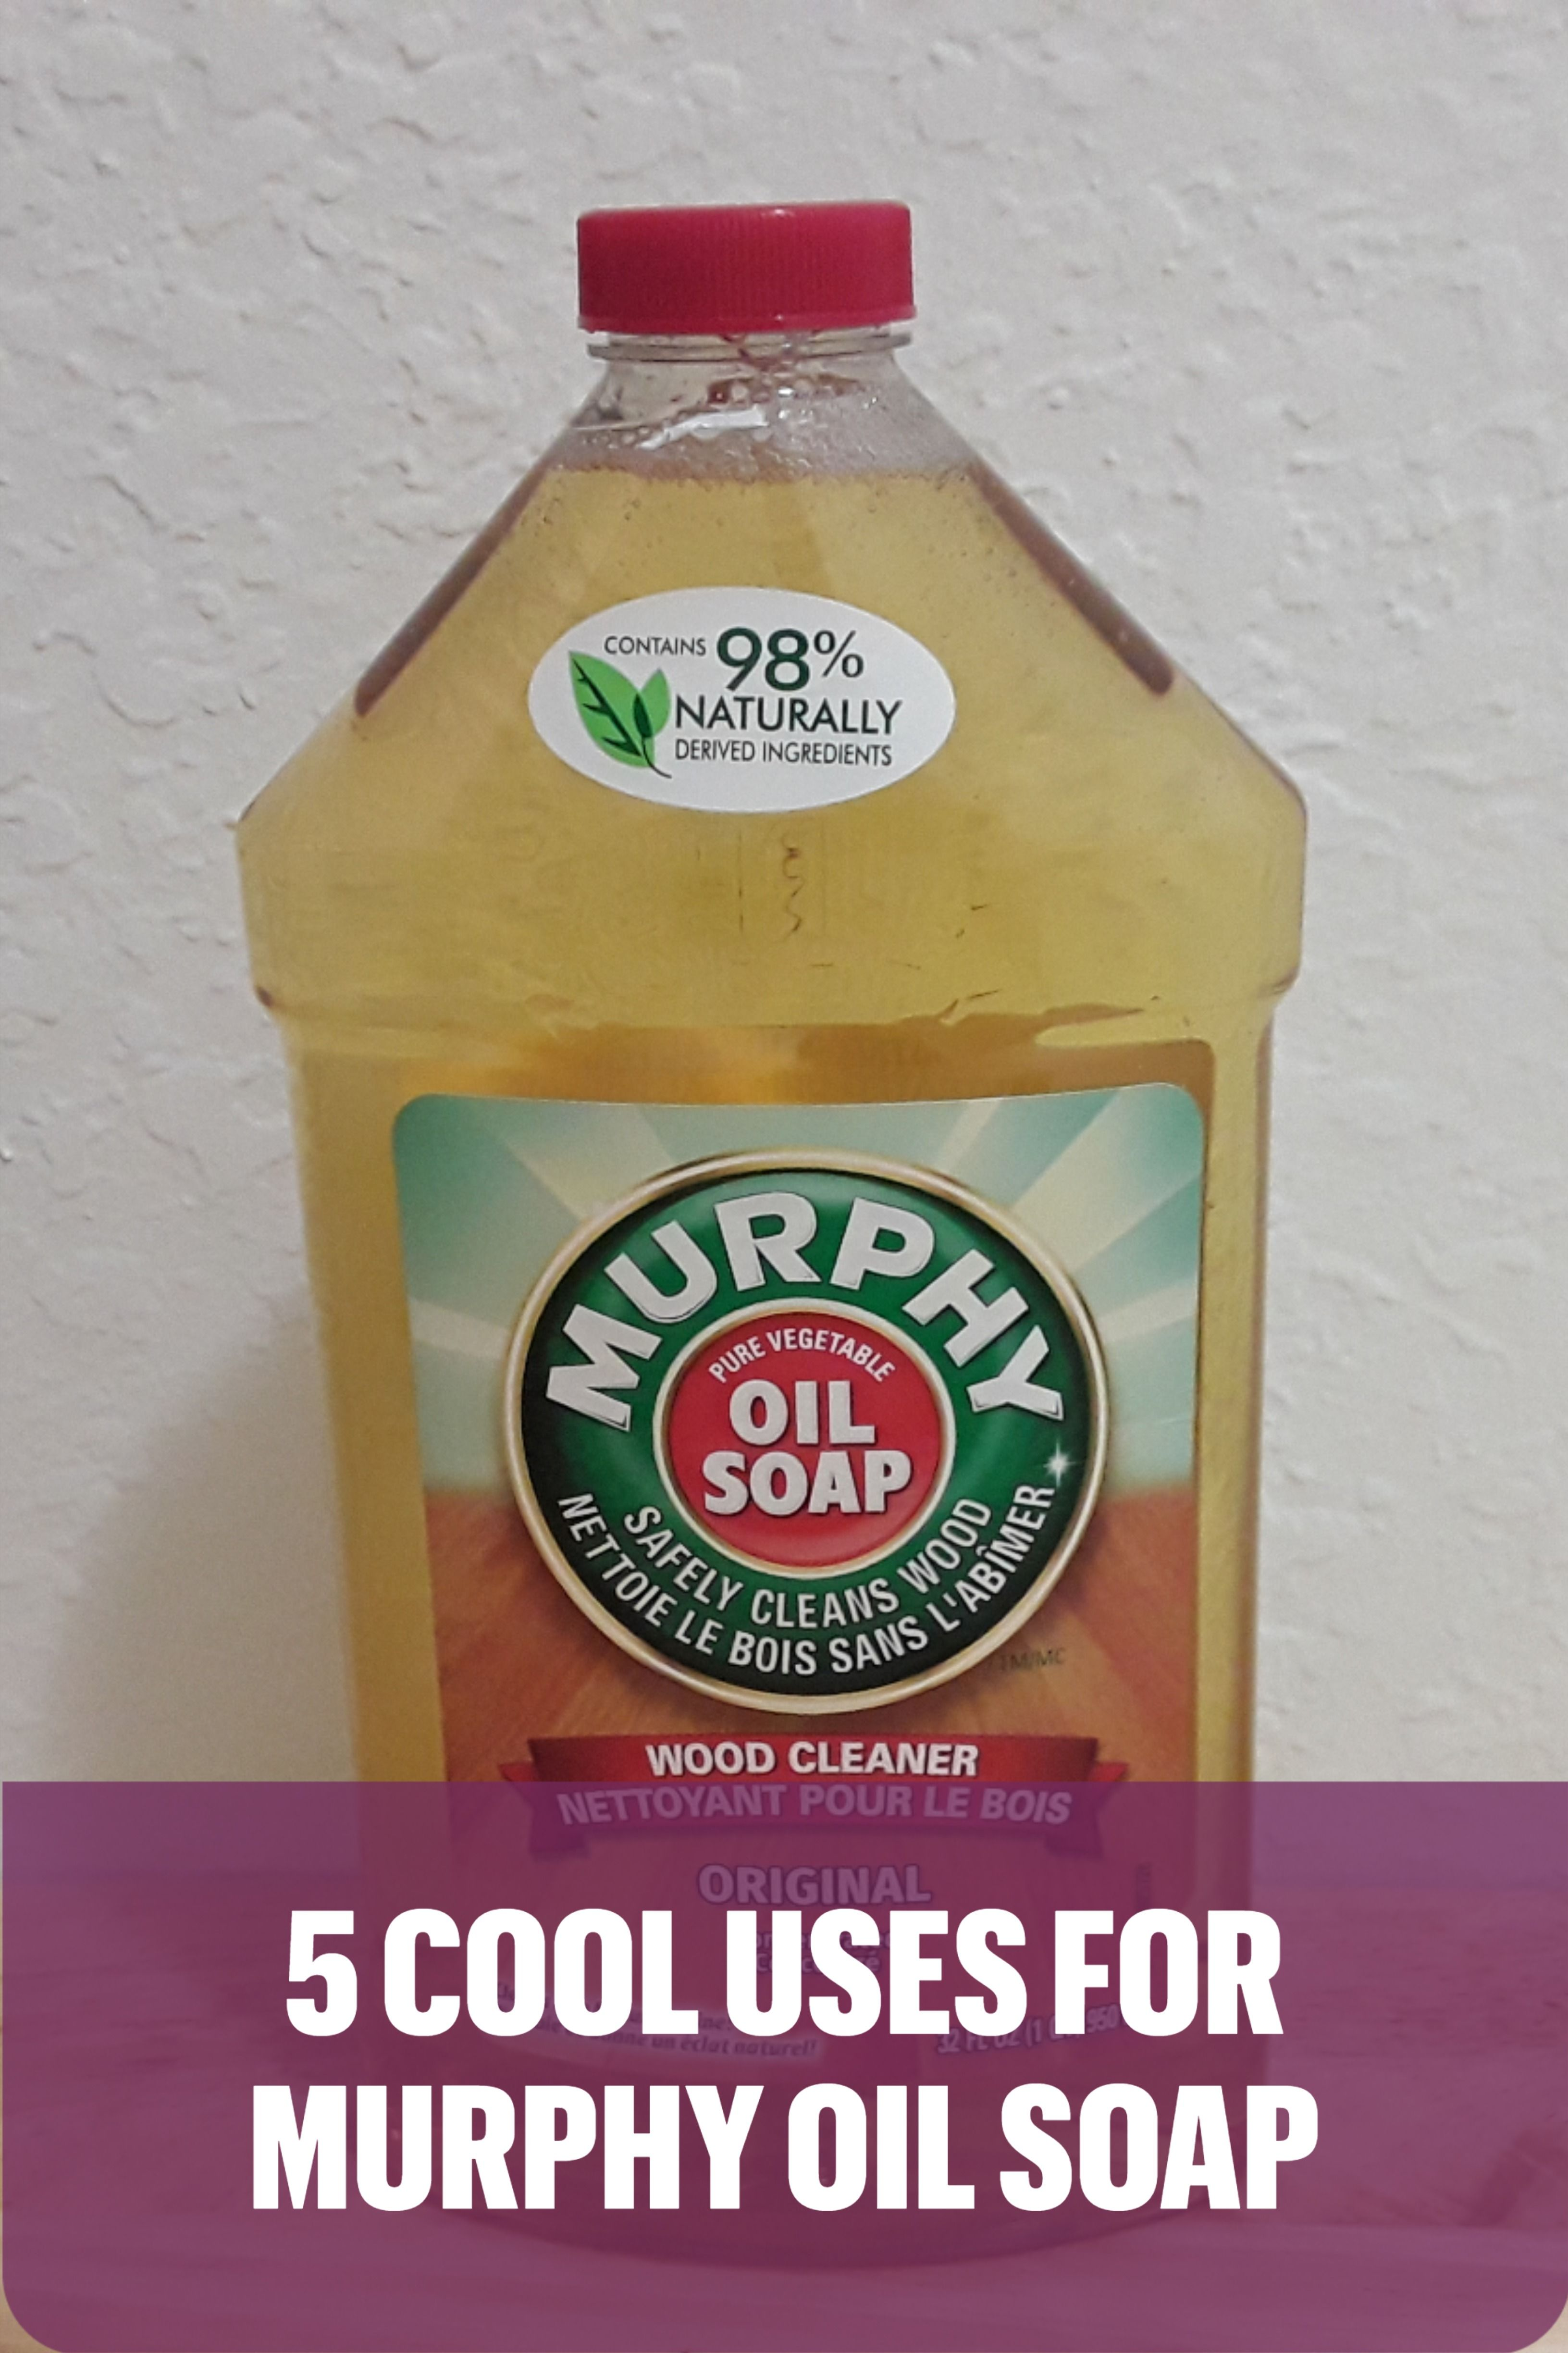 6 AWESOME USES FOR MURPHY'S OIL SOAP in 2020 | Murphys oil ...